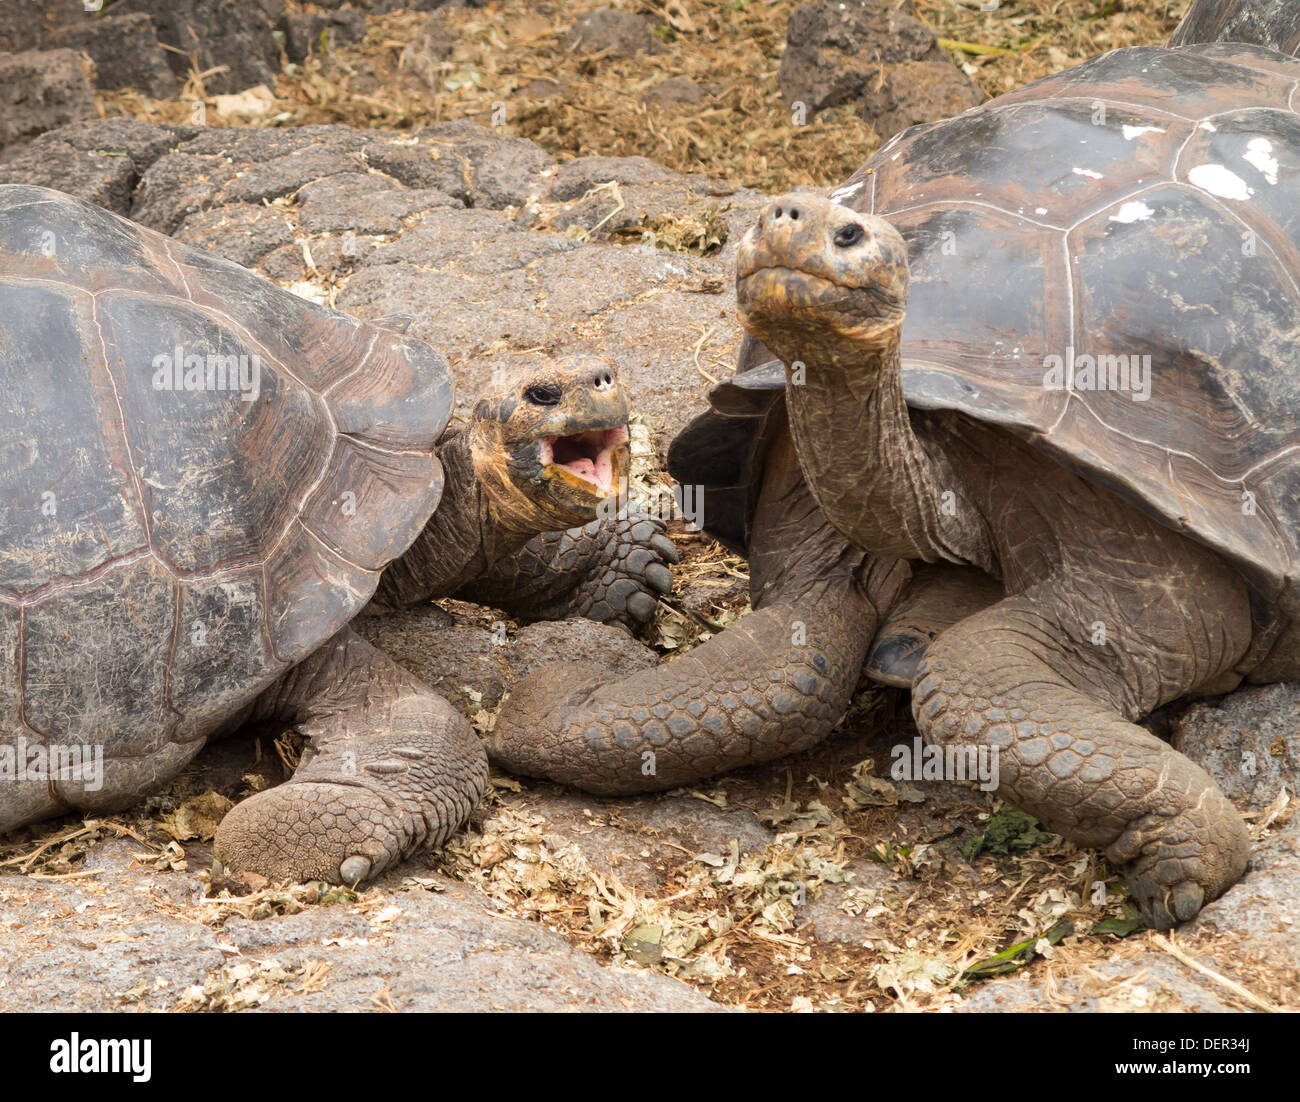 Pair of large giant turtles on the Galapagos Islands - Stock Image